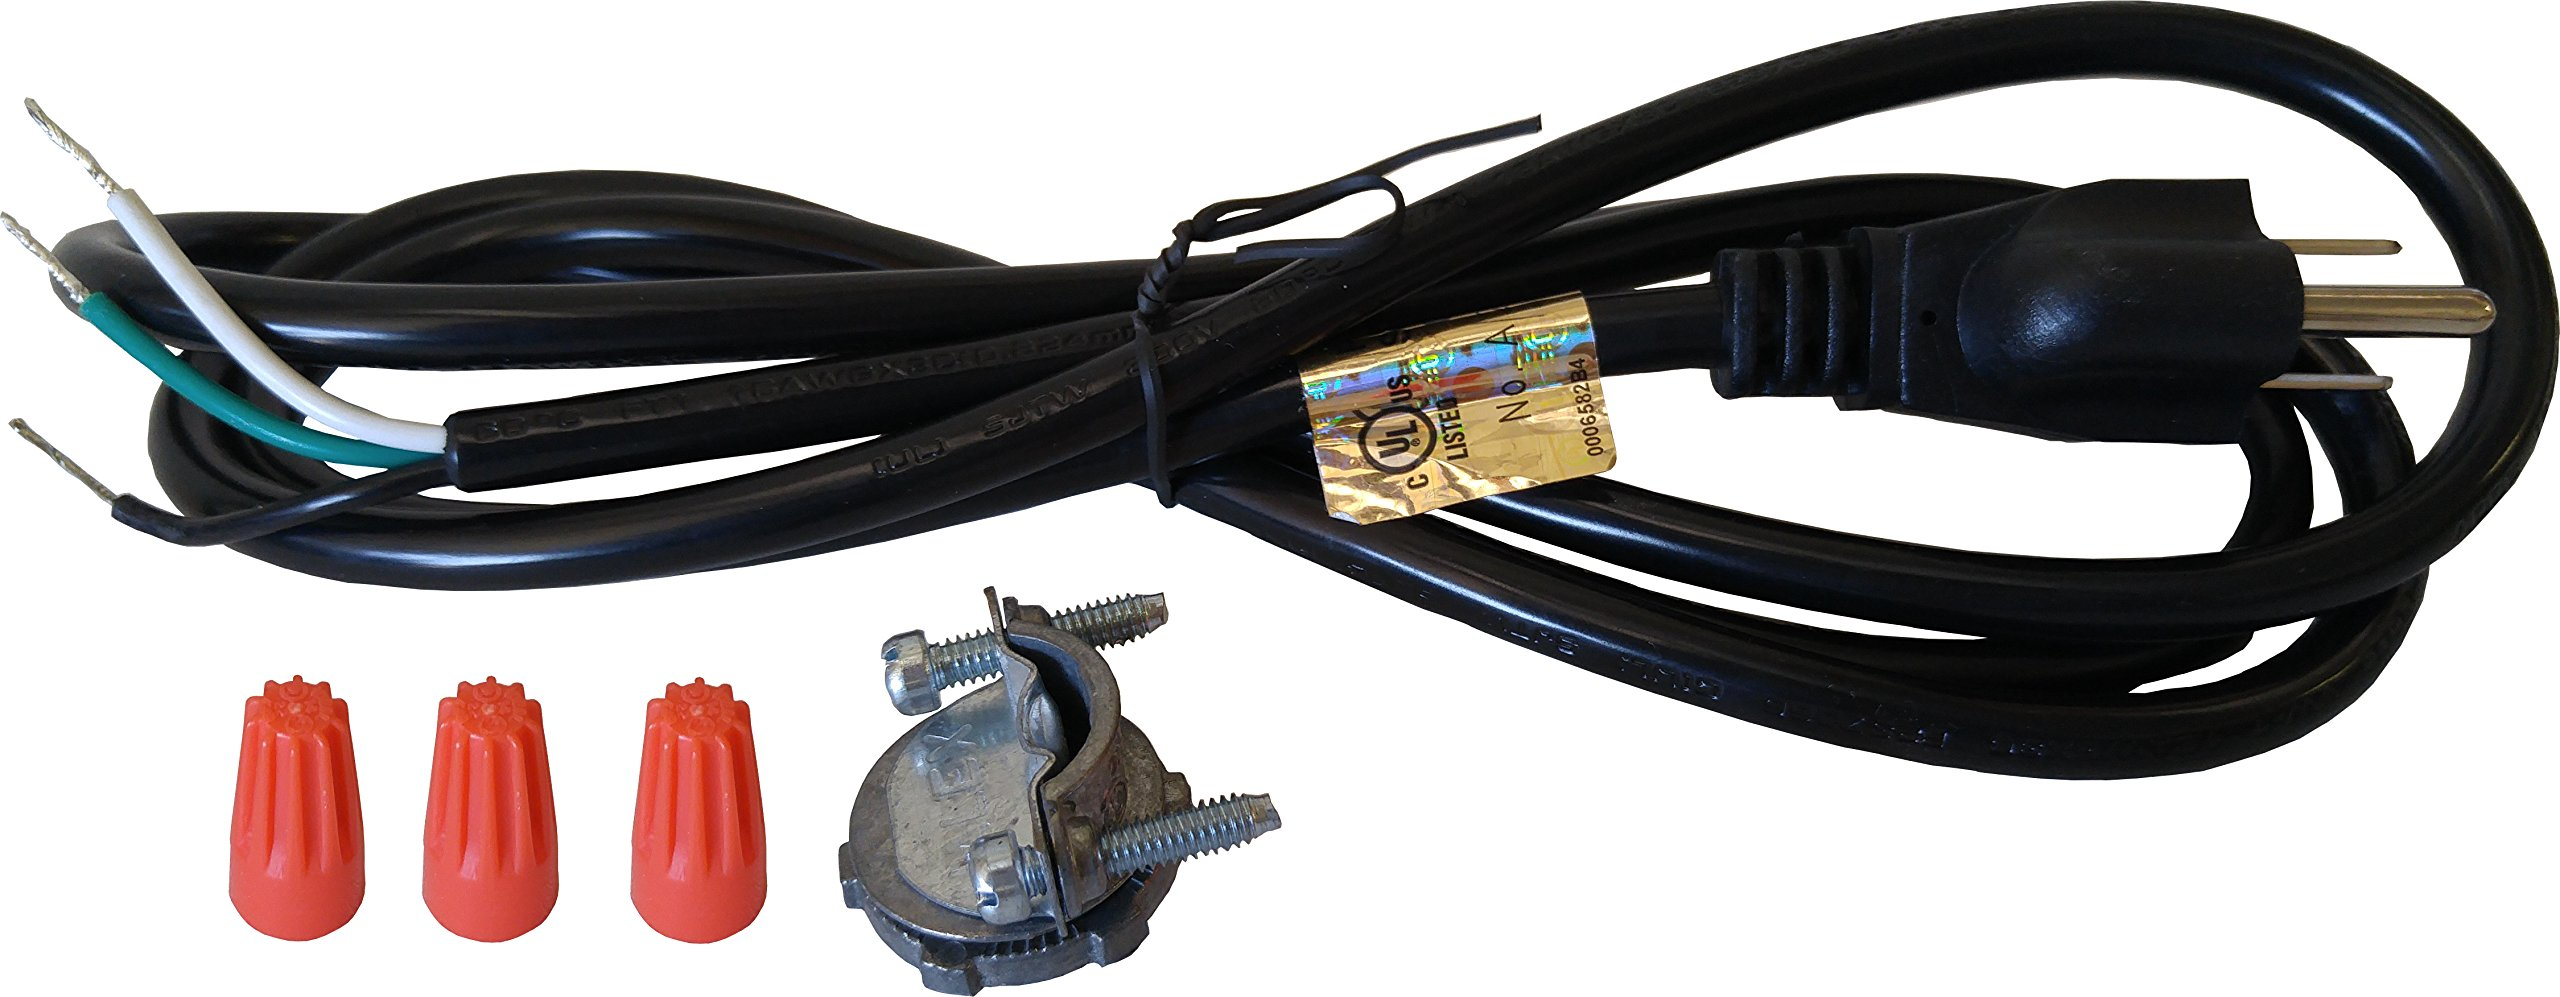 In sink Erator Disposal Power Cord Kit with 3 Prong Plug - 5 Pack by YJ Elec